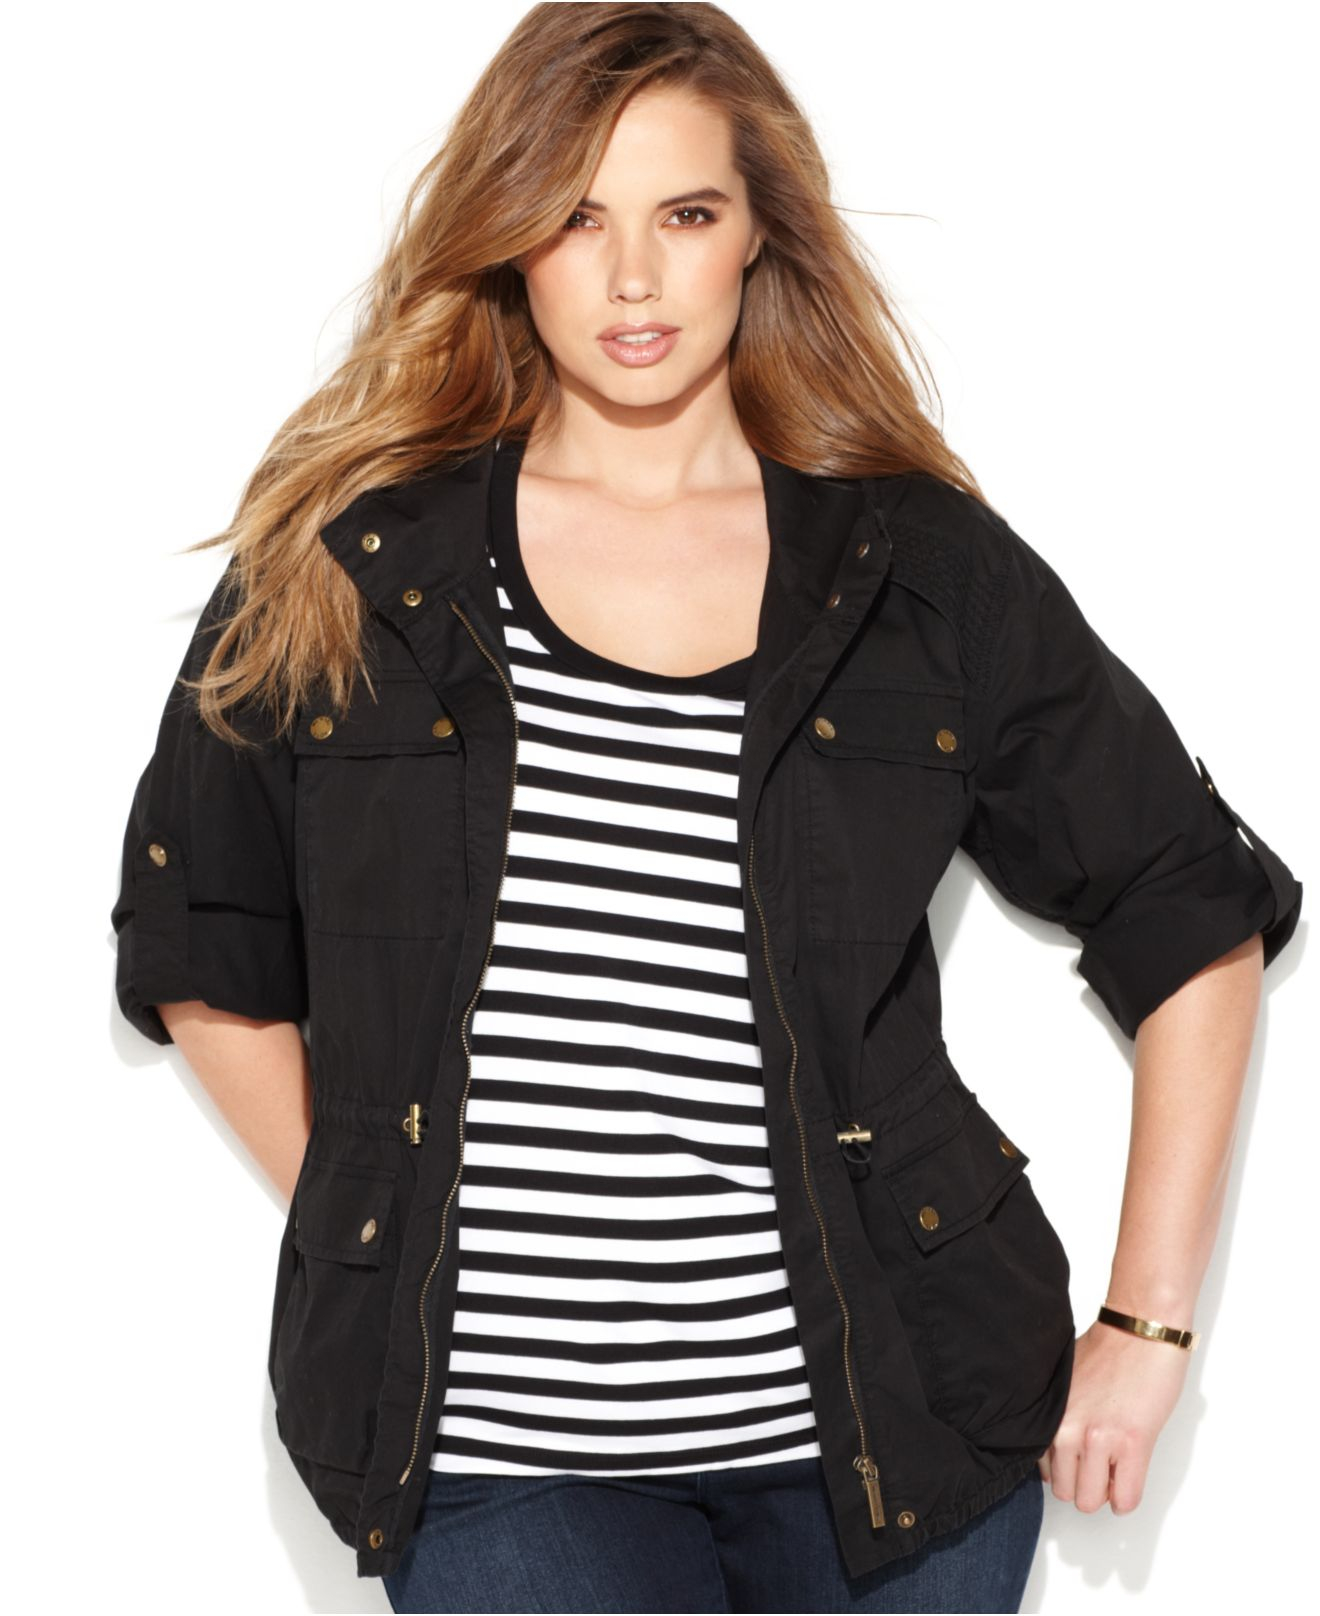 b9221ba6cf4 Gallery. Previously sold at  Macy s · Women s Michael Kors Anorak Women s  Print Leather Jackets ...